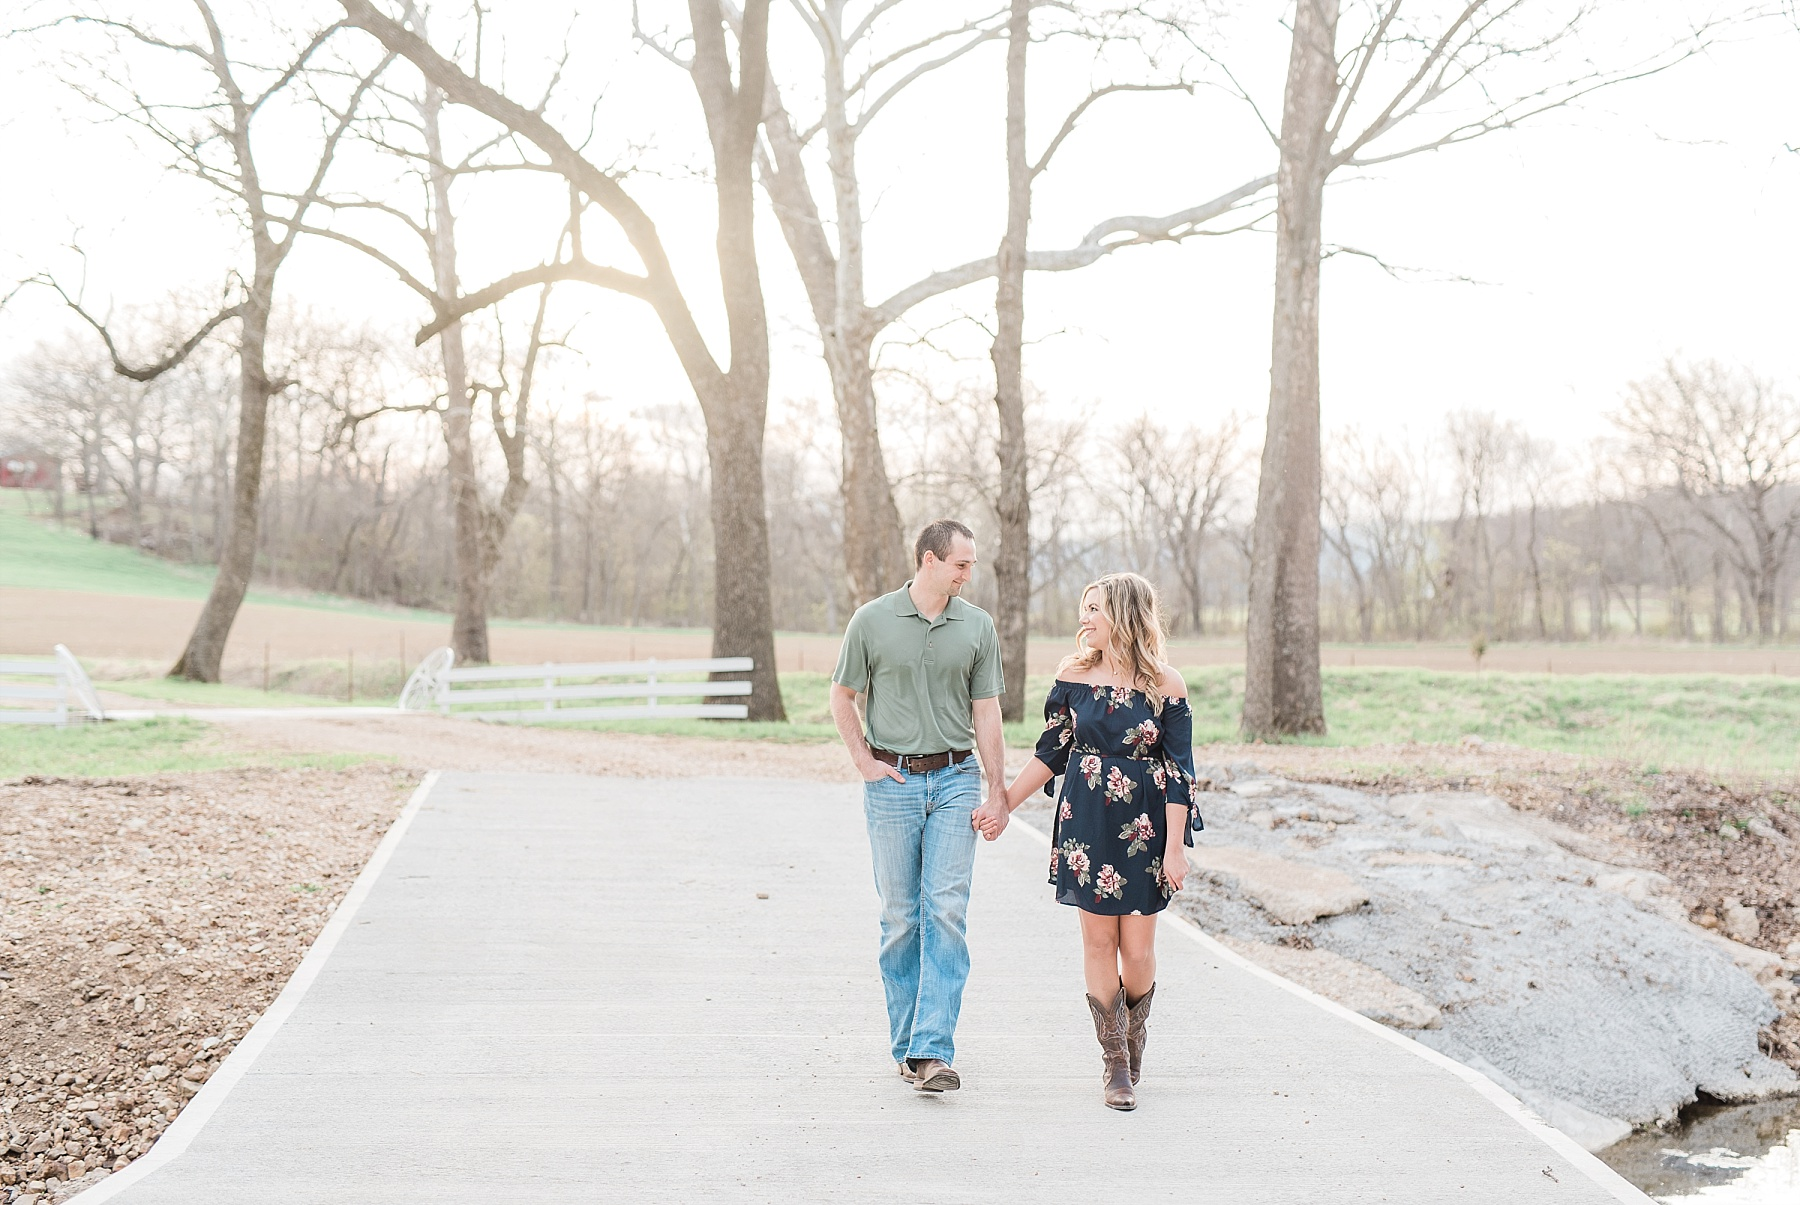 Spring Sunset Farm Engagement Session on Family Farm in Missouri Midwest by Kelsi Kliethermes Photography_0005.jpg